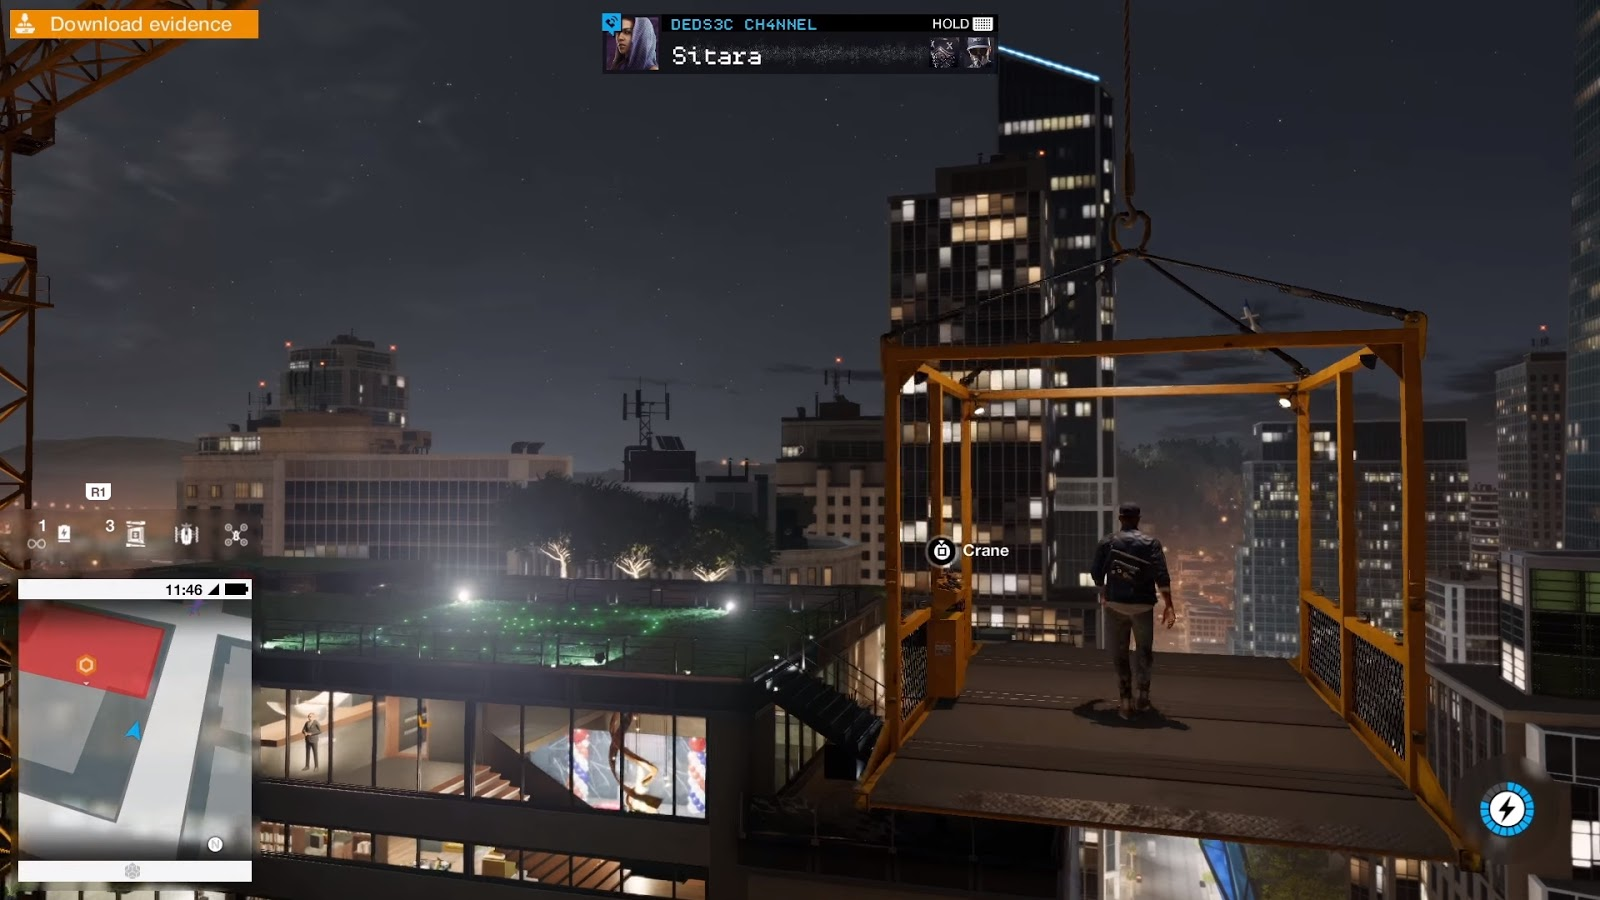 download watch dogs 2 digital deluxe edition gold full version cpy cracked ftp link direct links singlelink 1gb/part 2gb/part 4gb/part rar iso